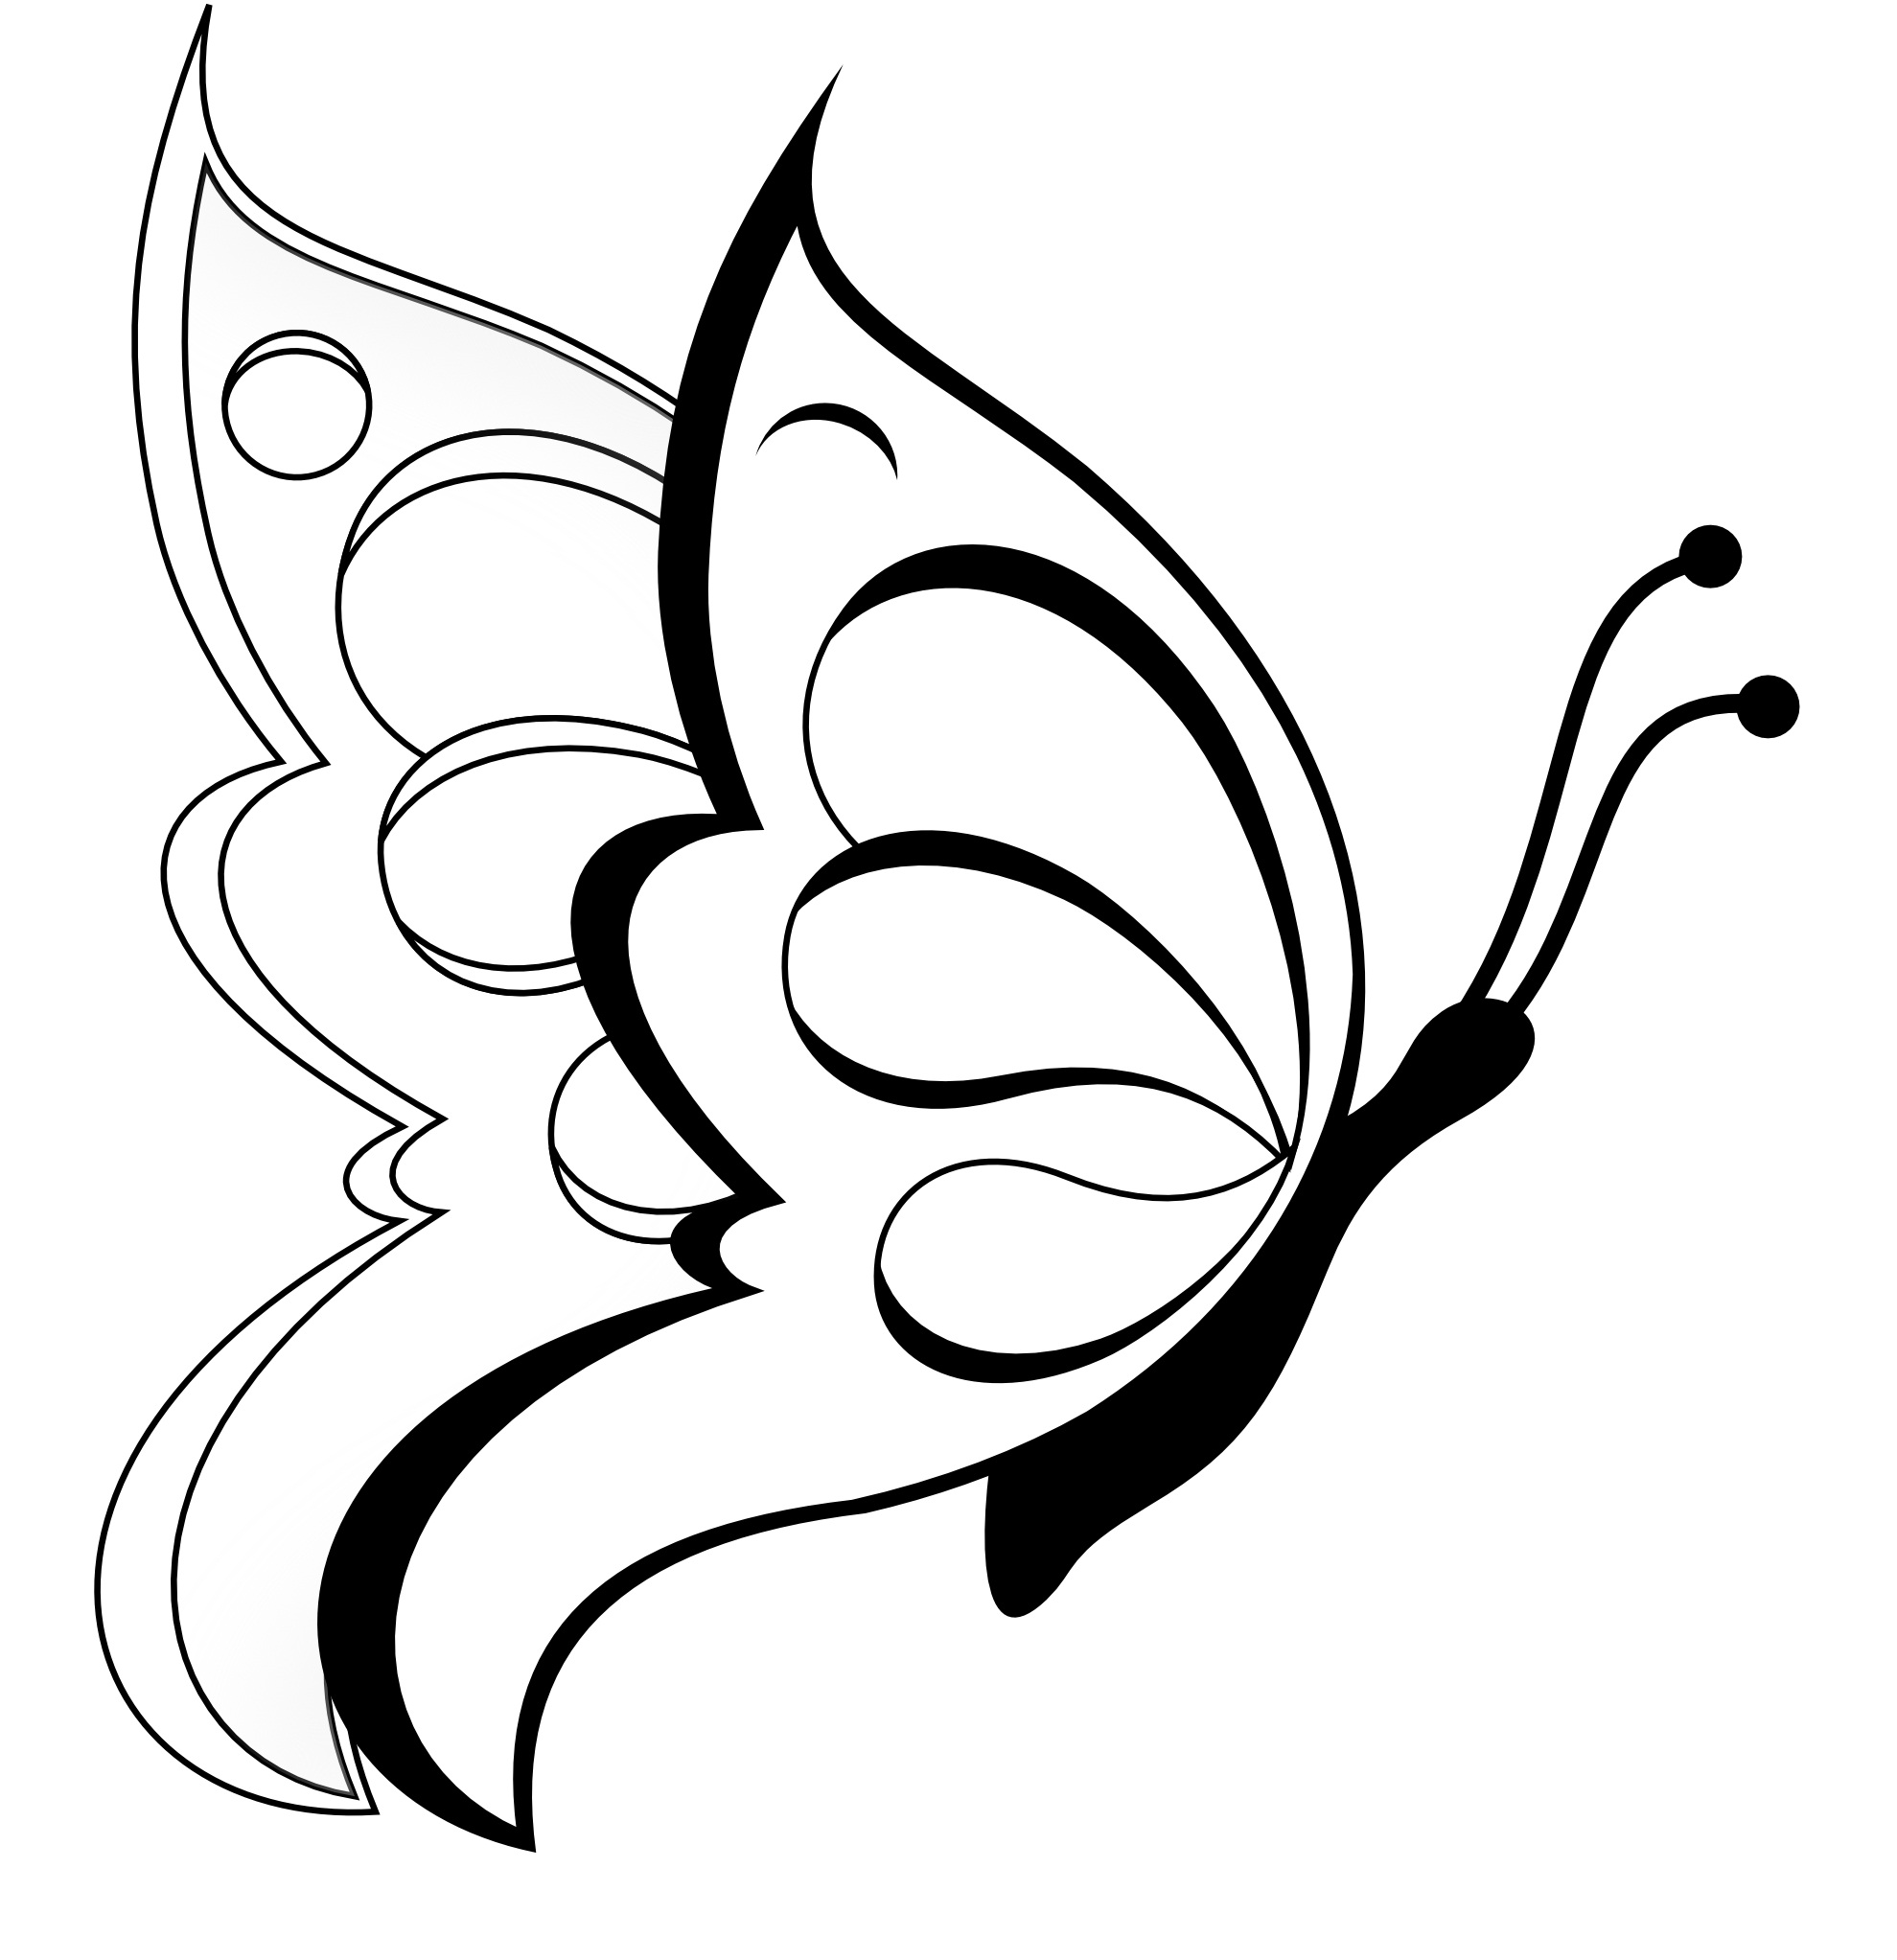 free coloring pages with butterfly - photo#33